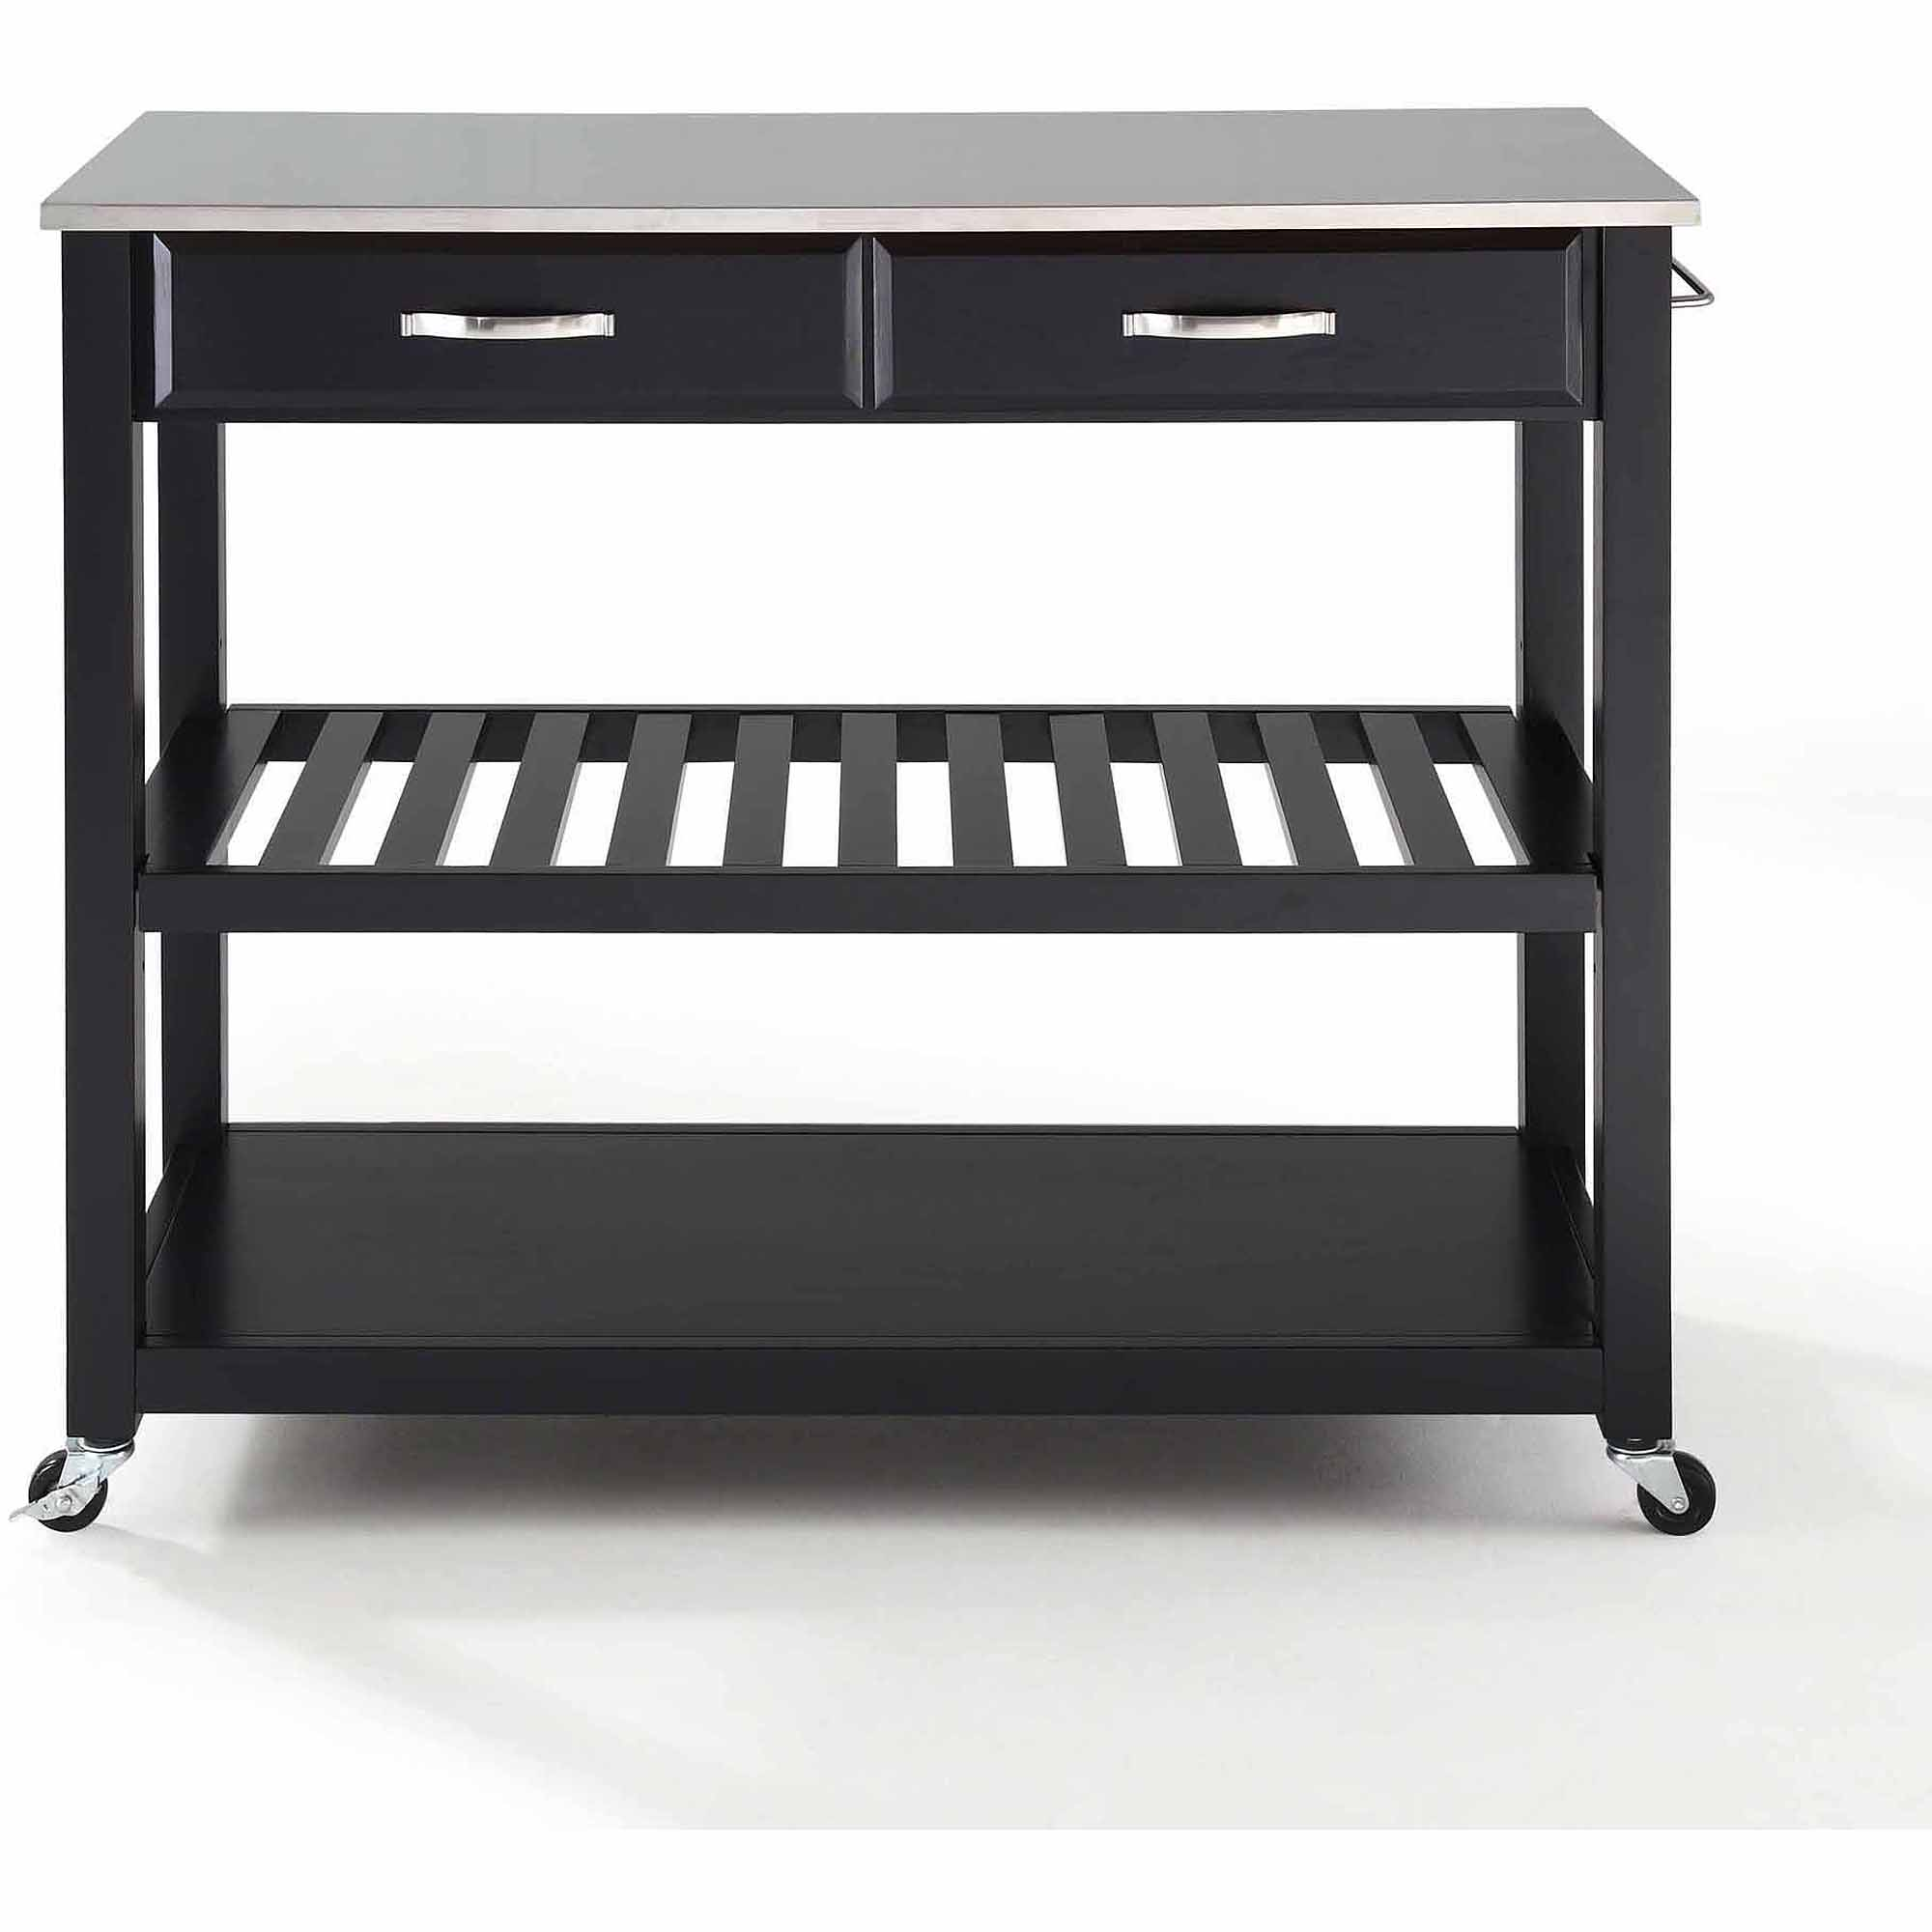 Superieur Crosley Furniture Stainless Steel Top Kitchen Cart With Optional Stool  Storage   Walmart.com